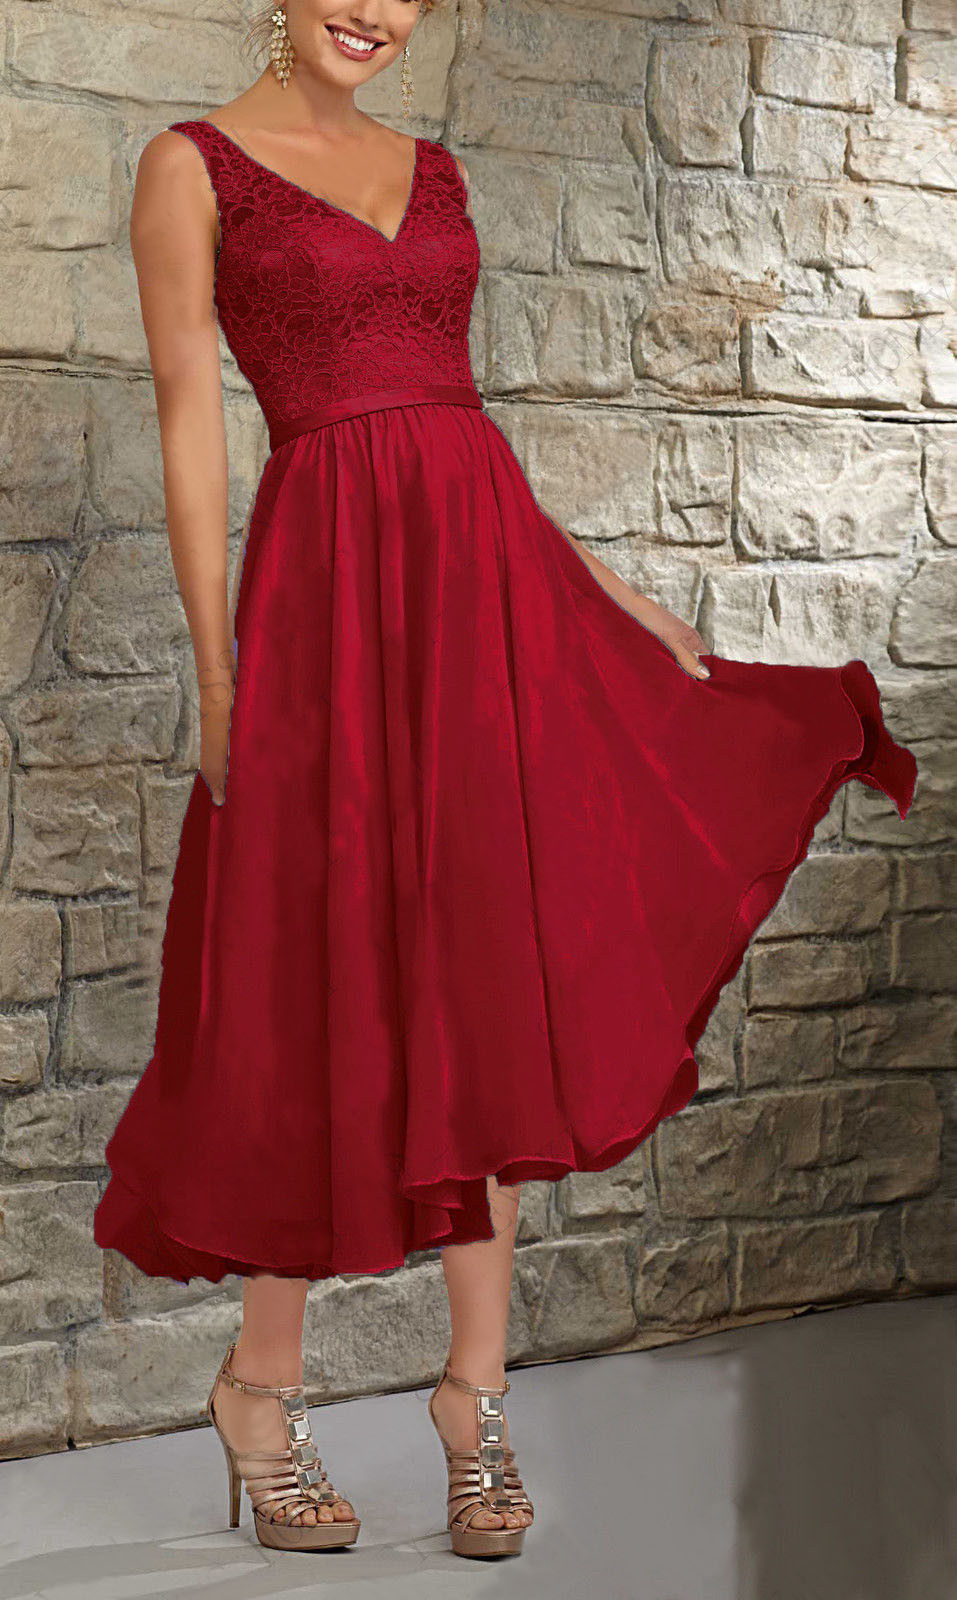 Margot Berry Burgundy Short V Neck Mother of the Bride Bridesmaid Wedding Bridal Dress UK